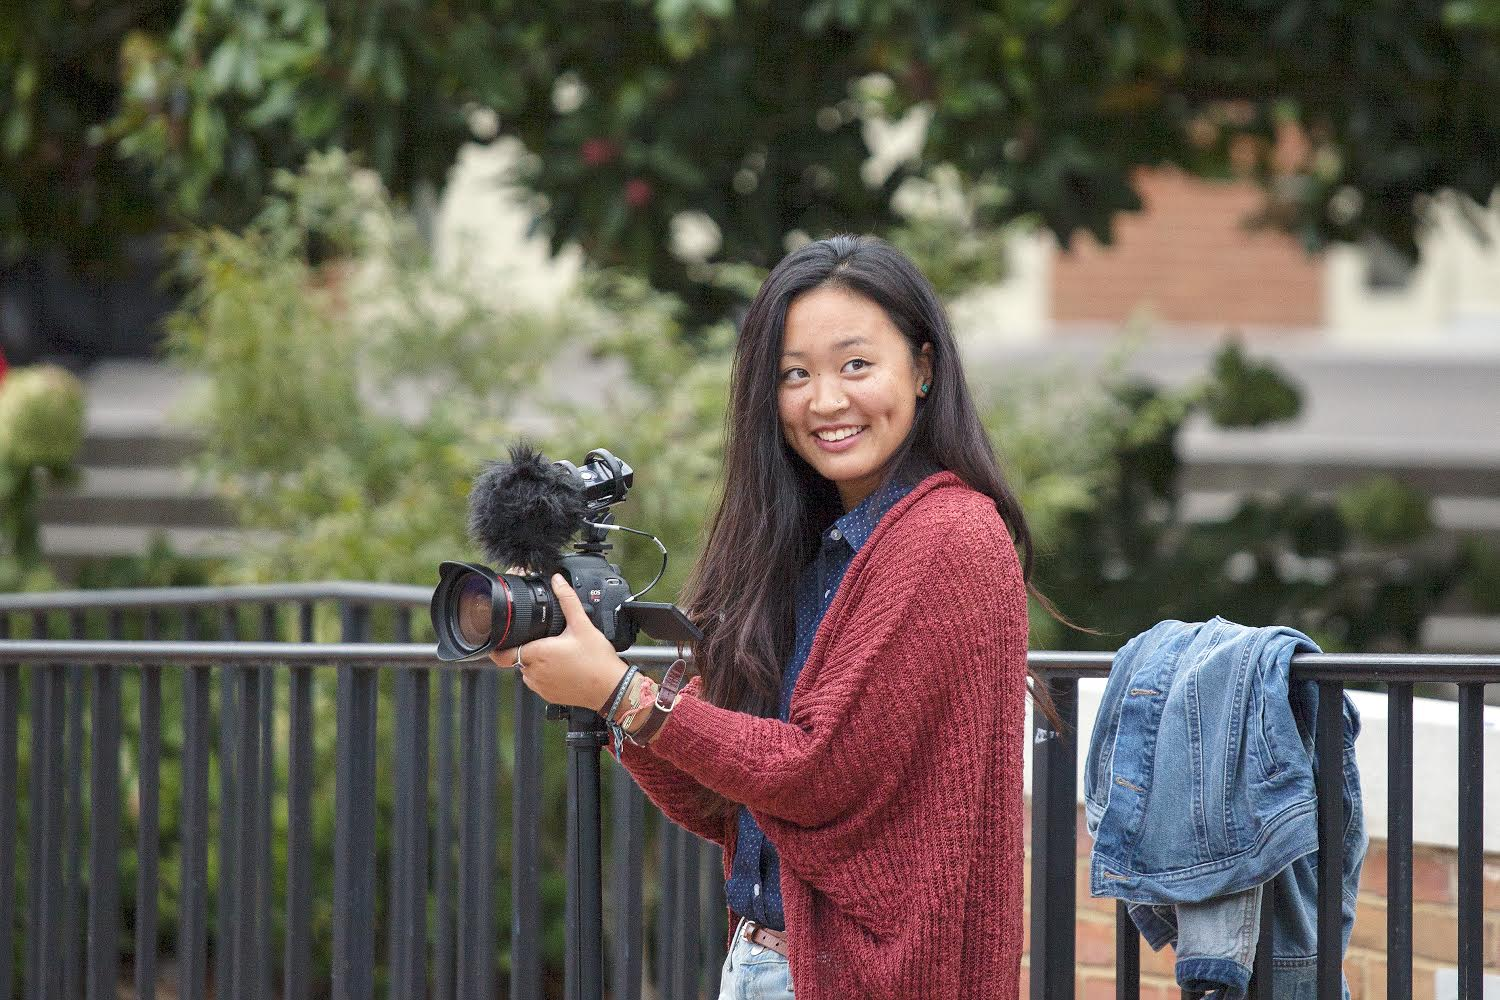 Kristi Chan: Artist     Photographer & Painter   , San Francisco     Assistant Curator, California Institute of Integral Studies    WFU Class of 2015  Major: Studio Art (Honors)  Minor: Art History    Read our interview with Kristi here